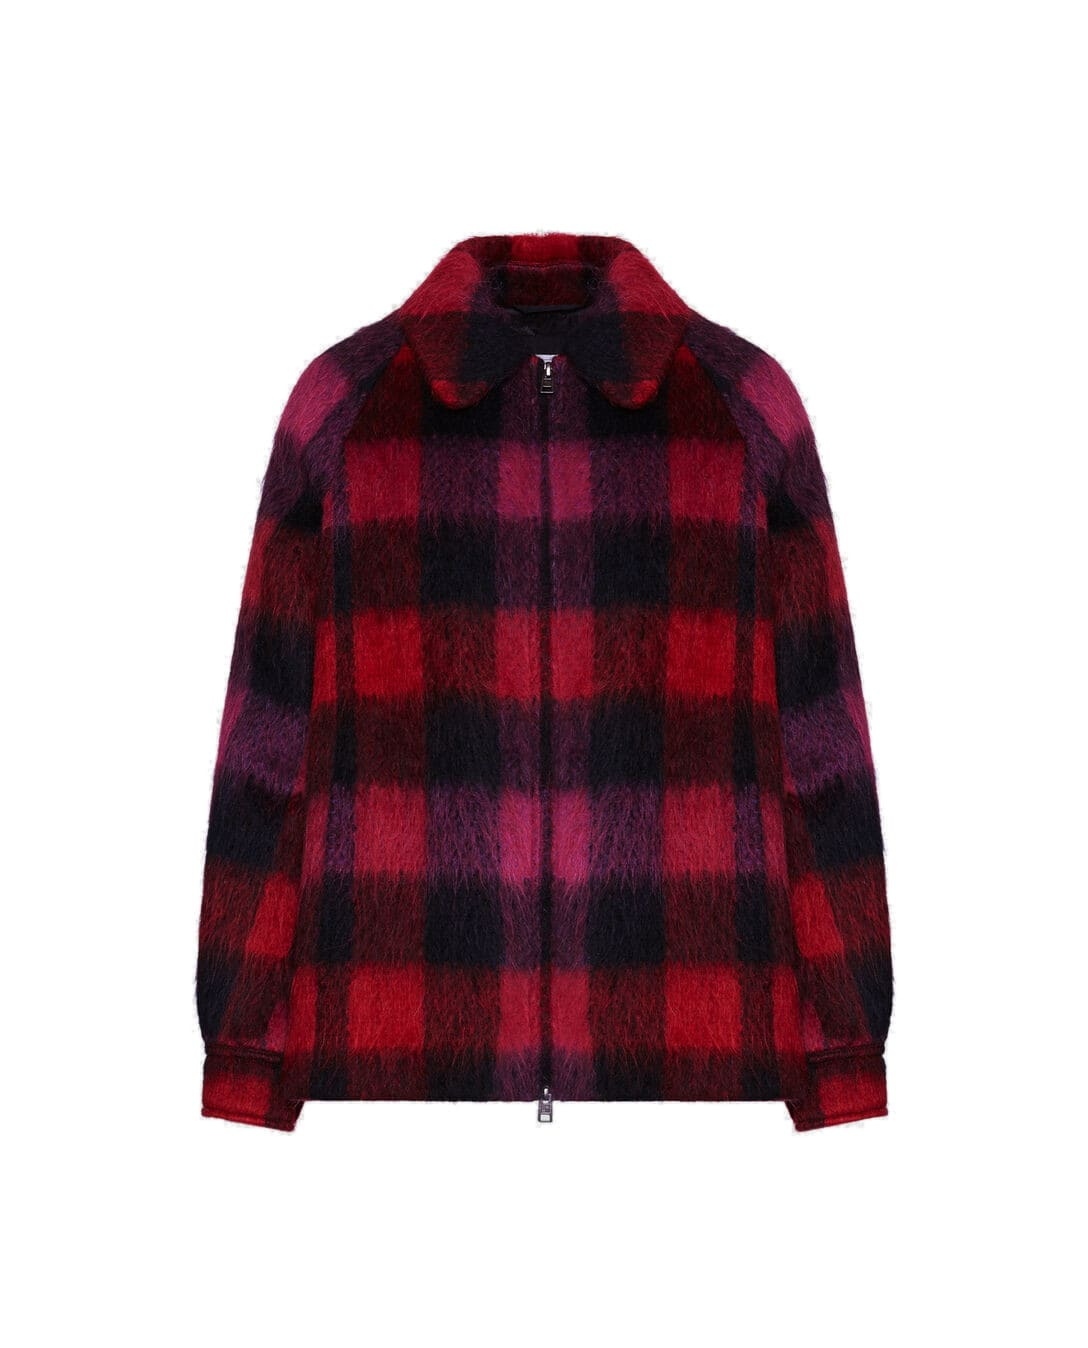 Woolrich Stag Jacket